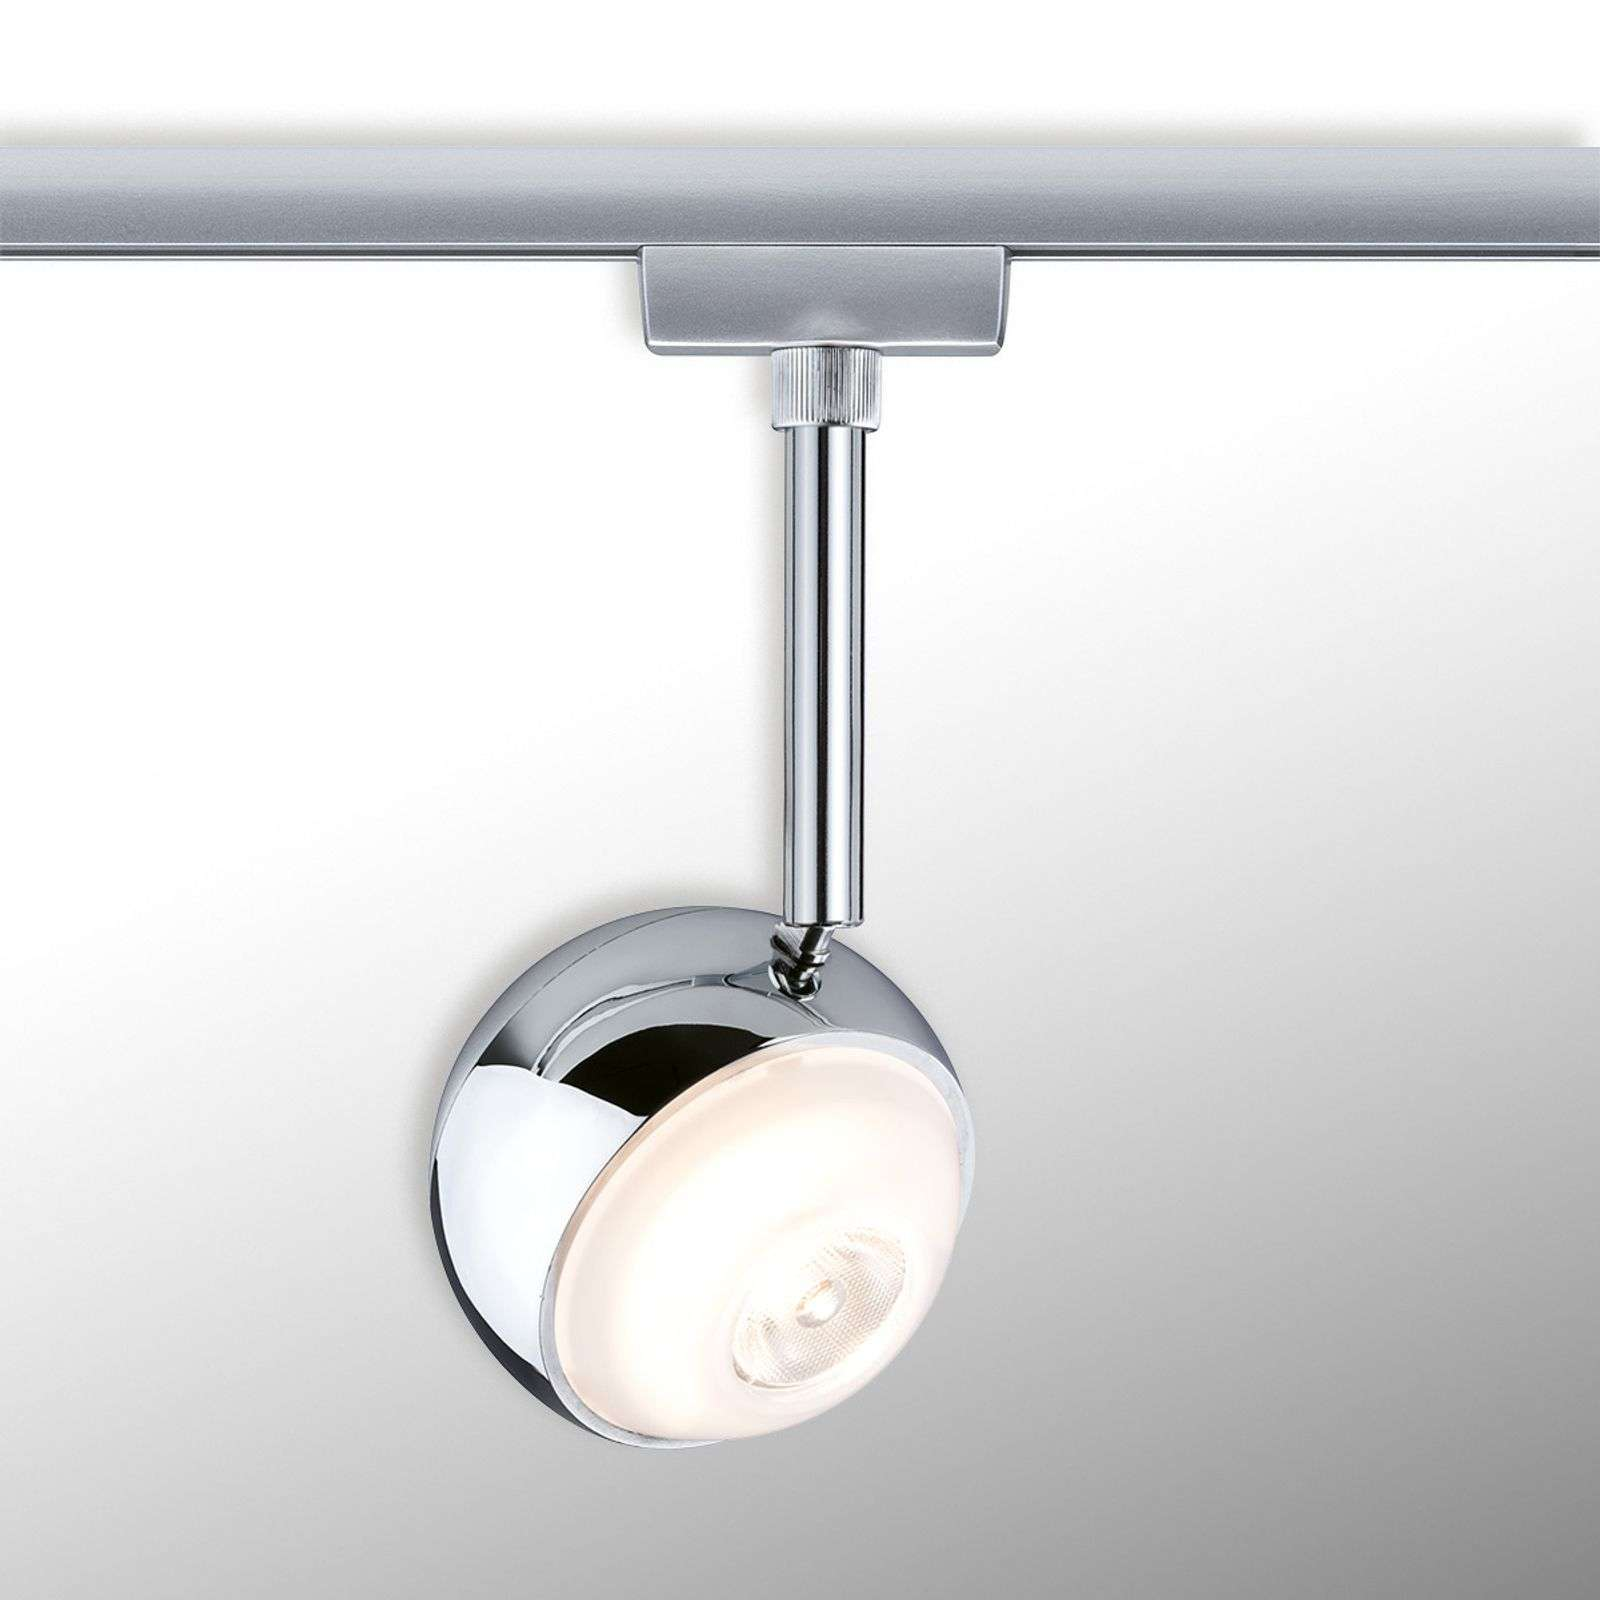 Capsule LED spot voor U-Rail railsystemen